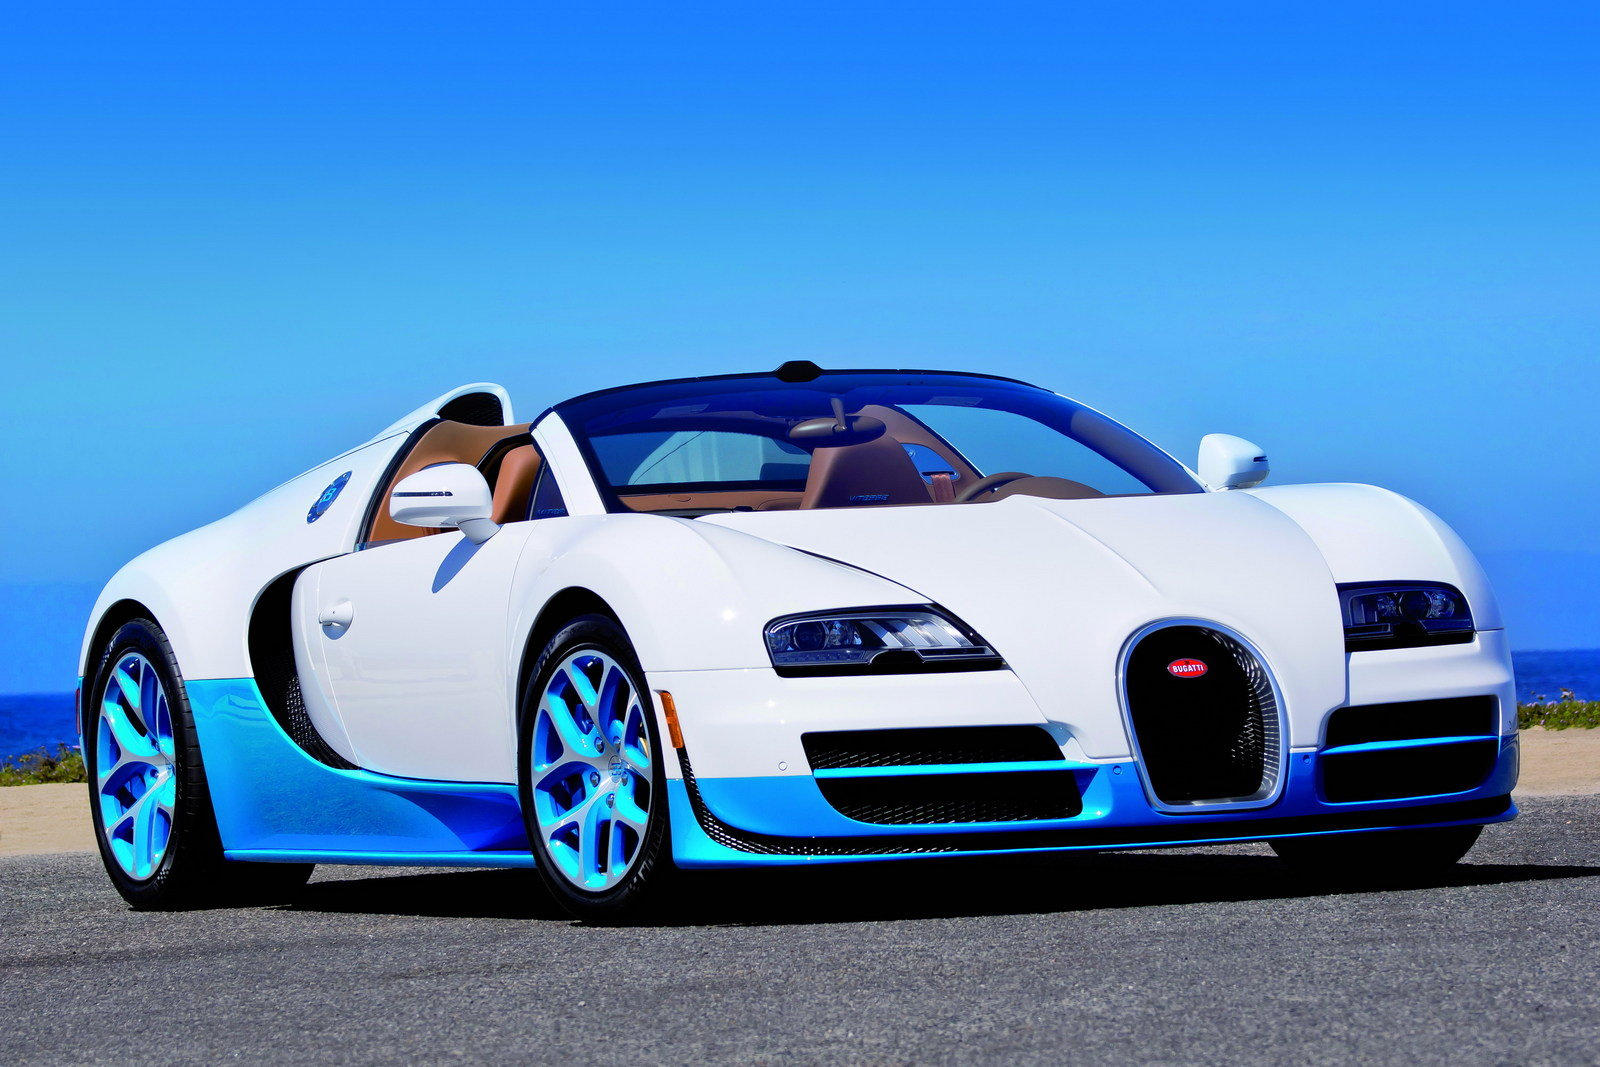 2012 bugatti veyron 16 4 grand sport vitesse bianco and new light blue review top speed. Black Bedroom Furniture Sets. Home Design Ideas